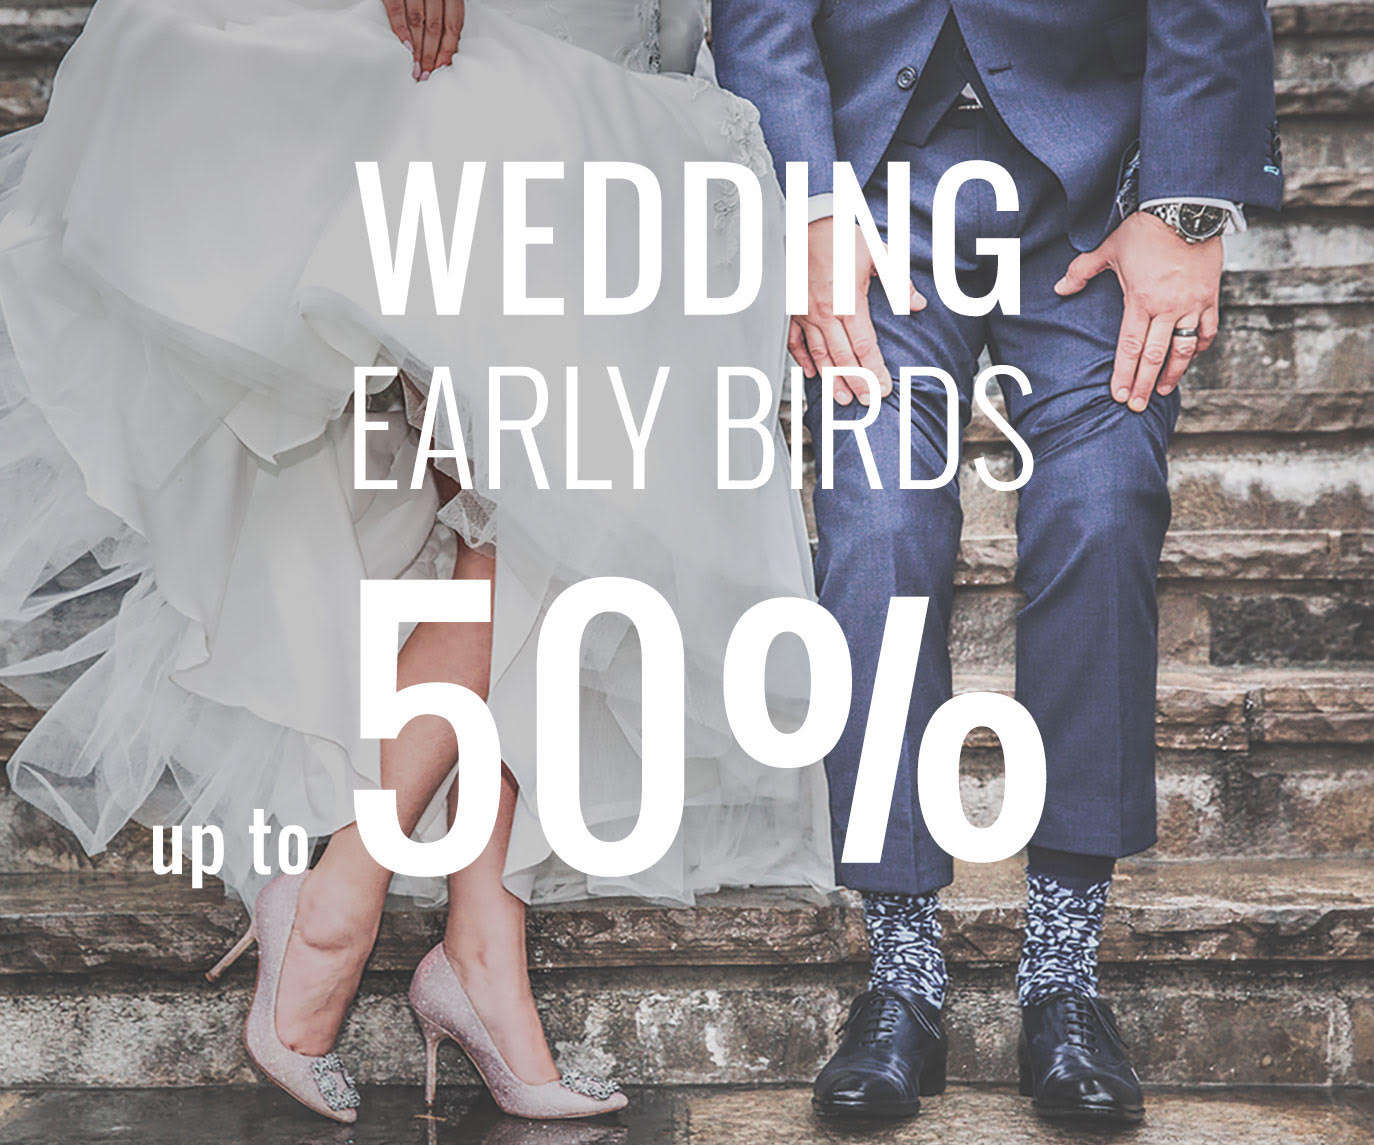 Wedding 2018 promotion